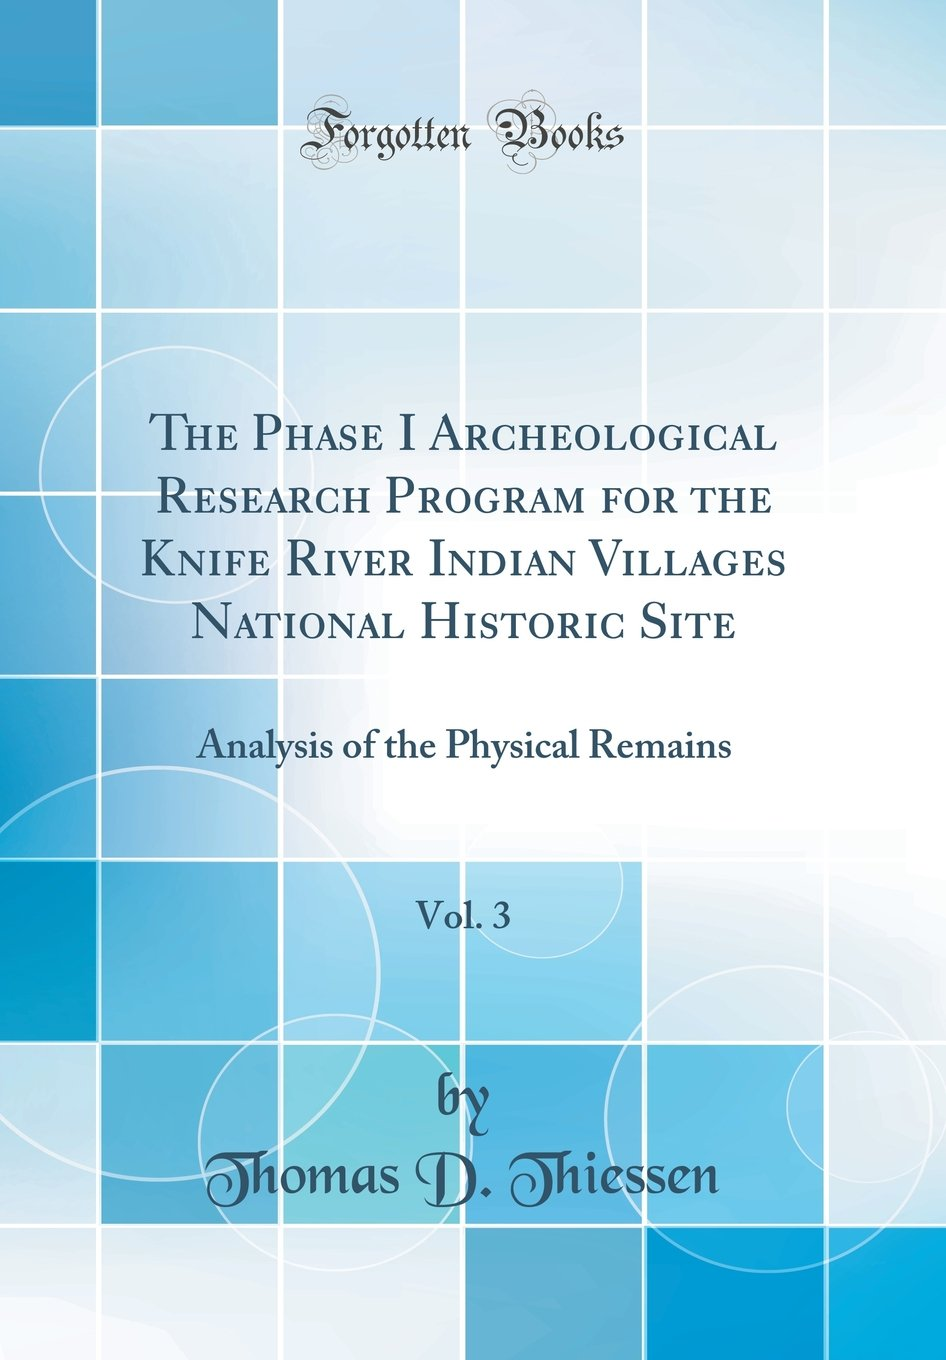 The Phase I Archeological Research Program for the Knife River Indian Villages National Historic Site, Vol. 3: Analysis of the Physical Remains (Classic Reprint) PDF